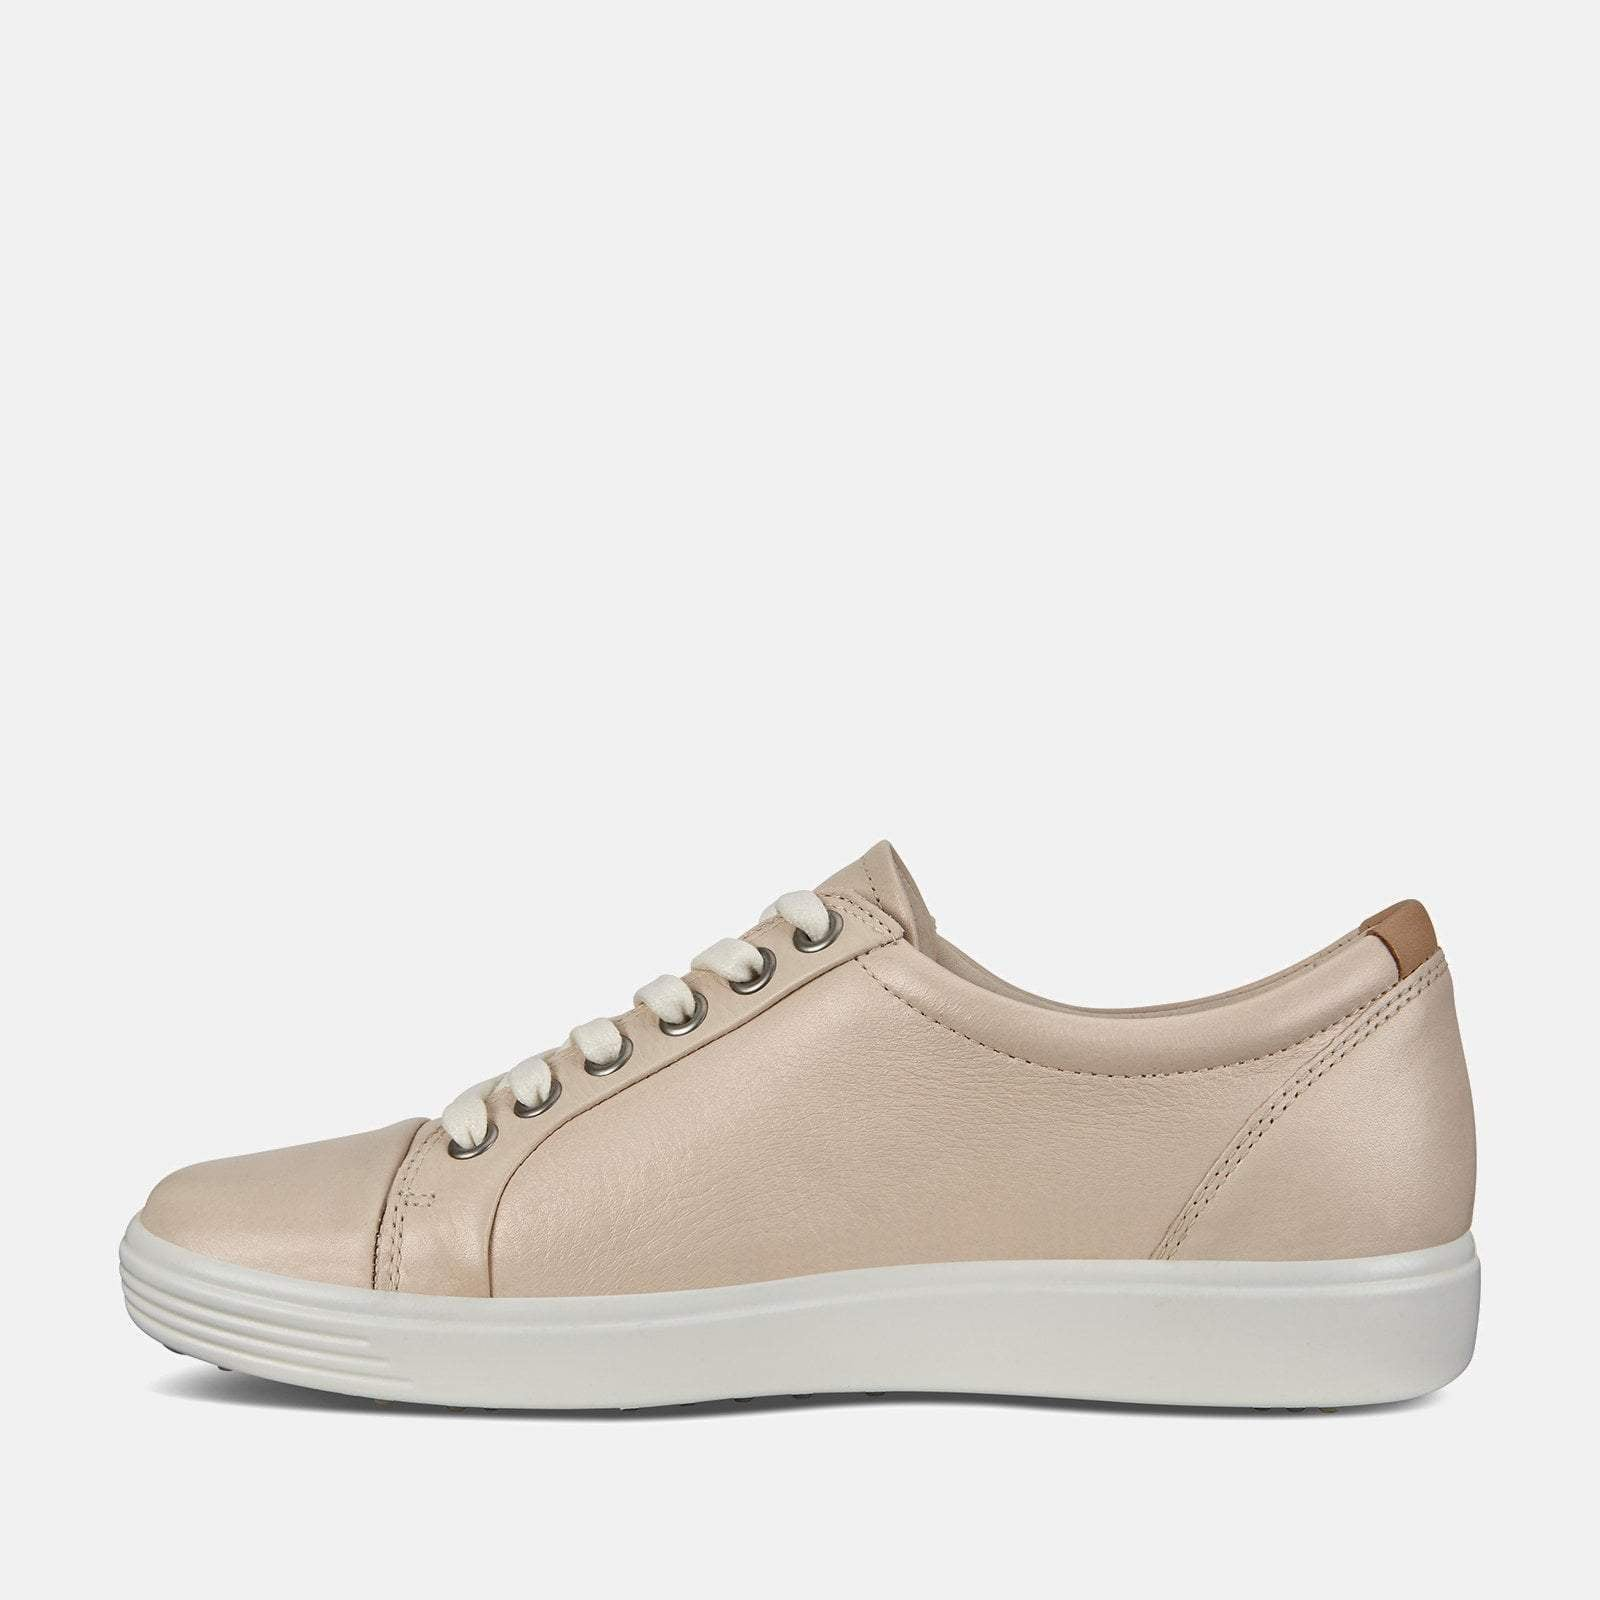 Ecco Footwear Soft 7 W 430003 51381 Vanilla Metallic - Ecco Cream Soft Leather Ladies Trainers